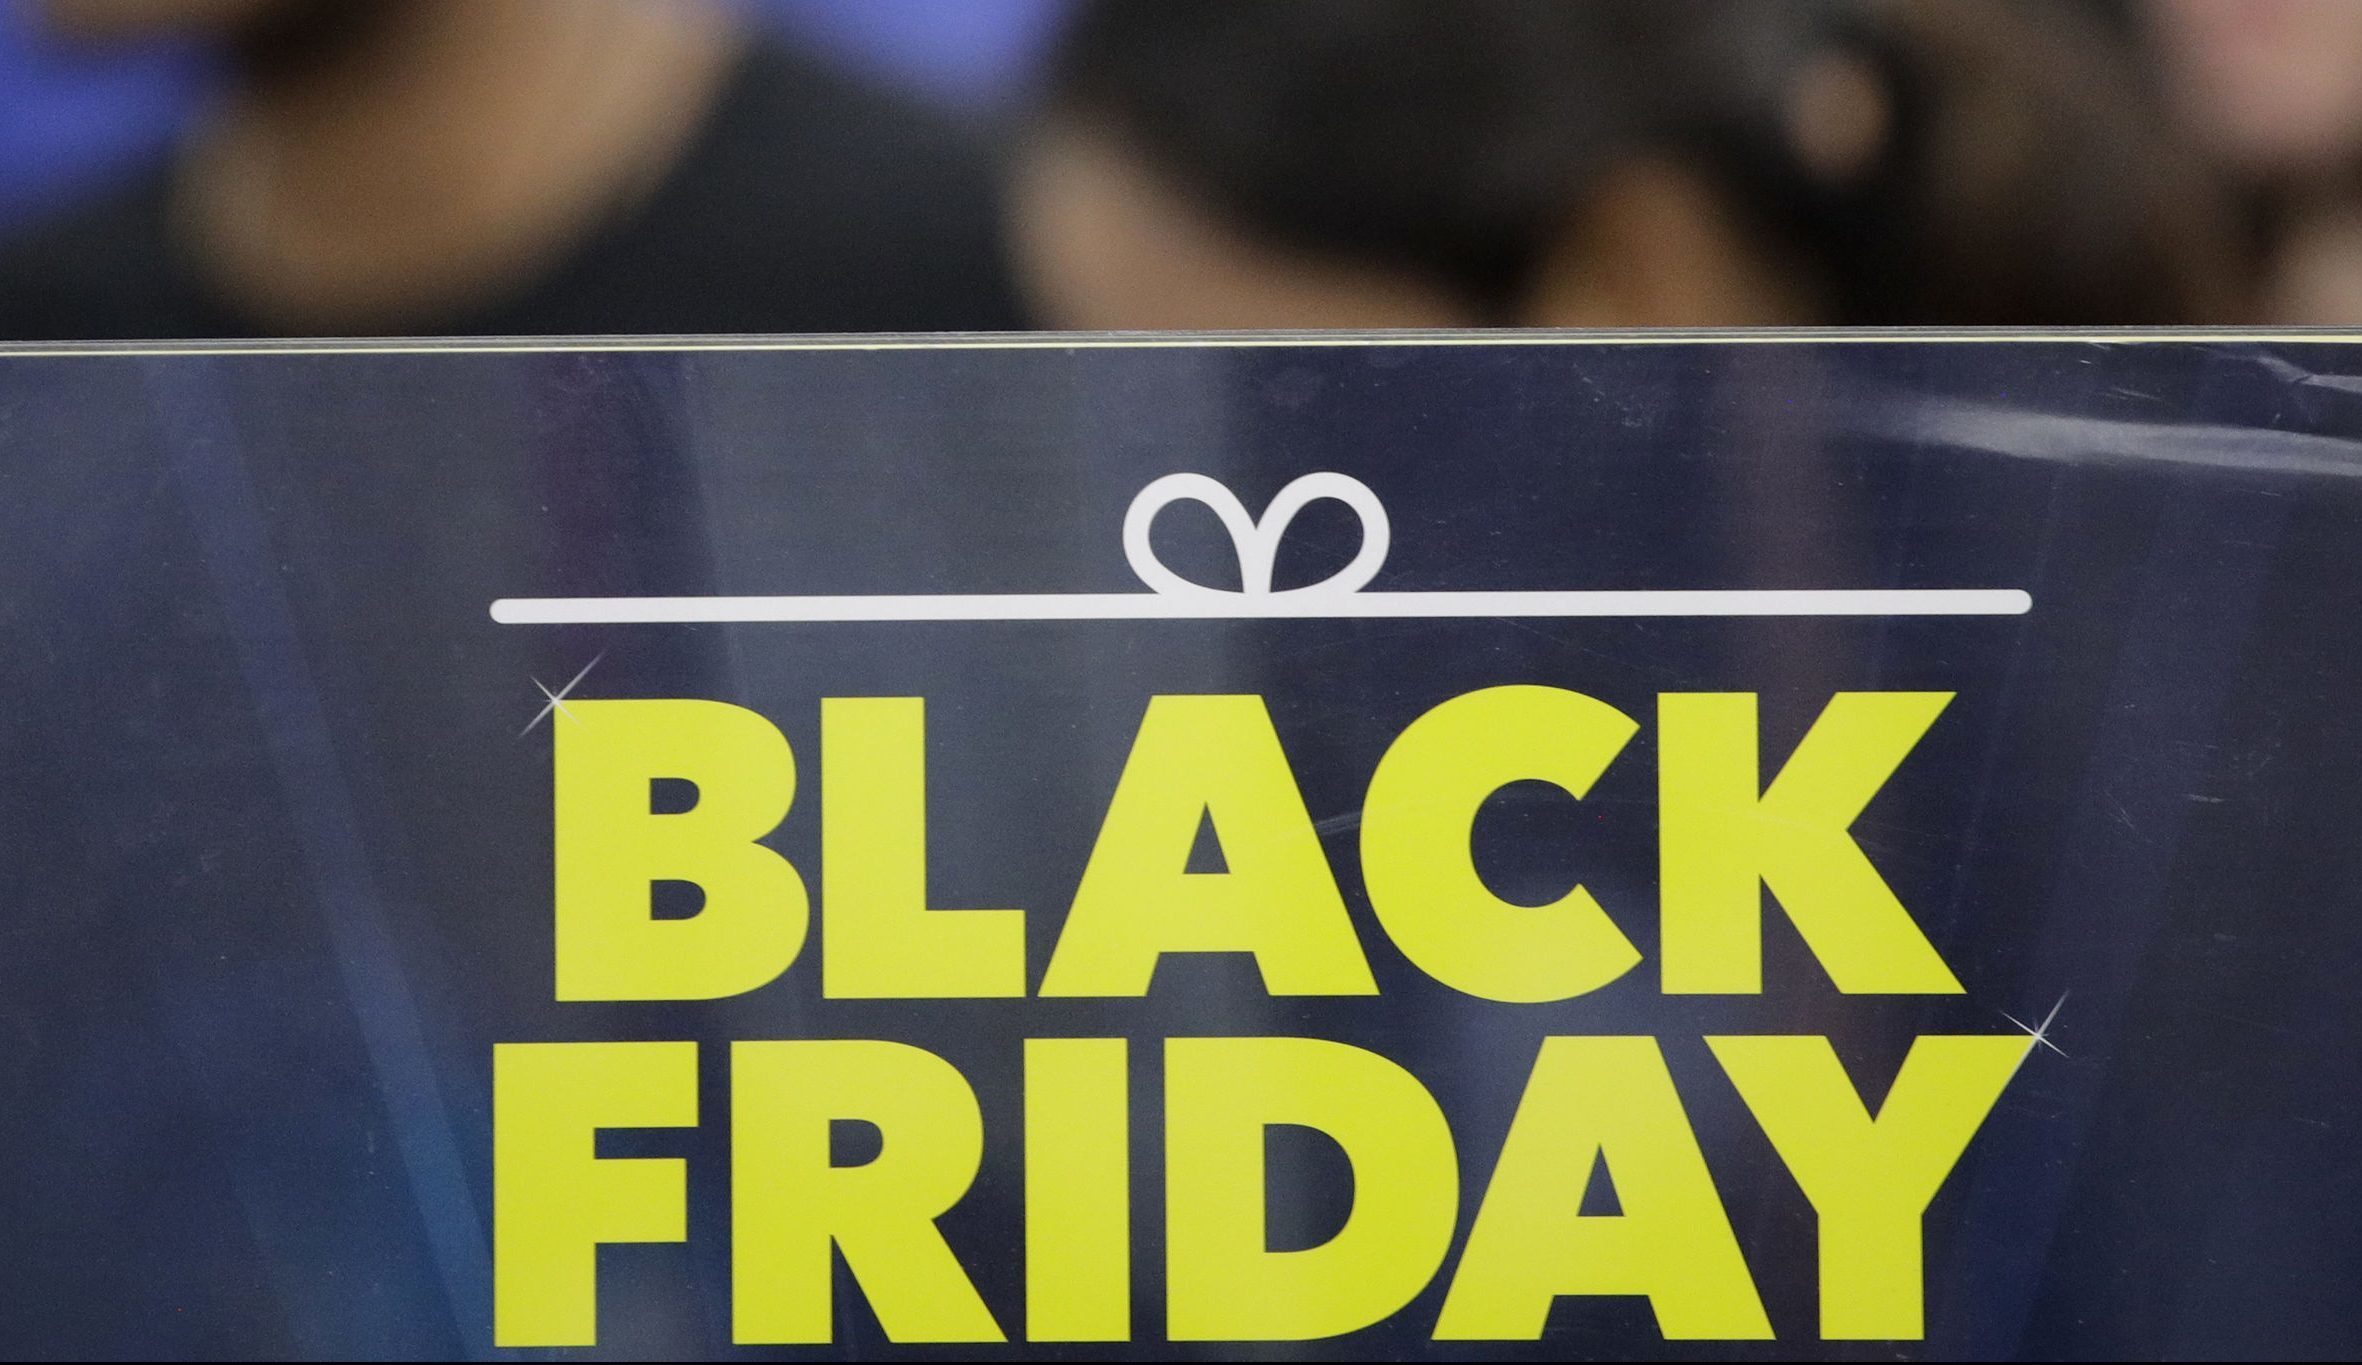 Black Friday (AP Photo/Charlie Riedel)